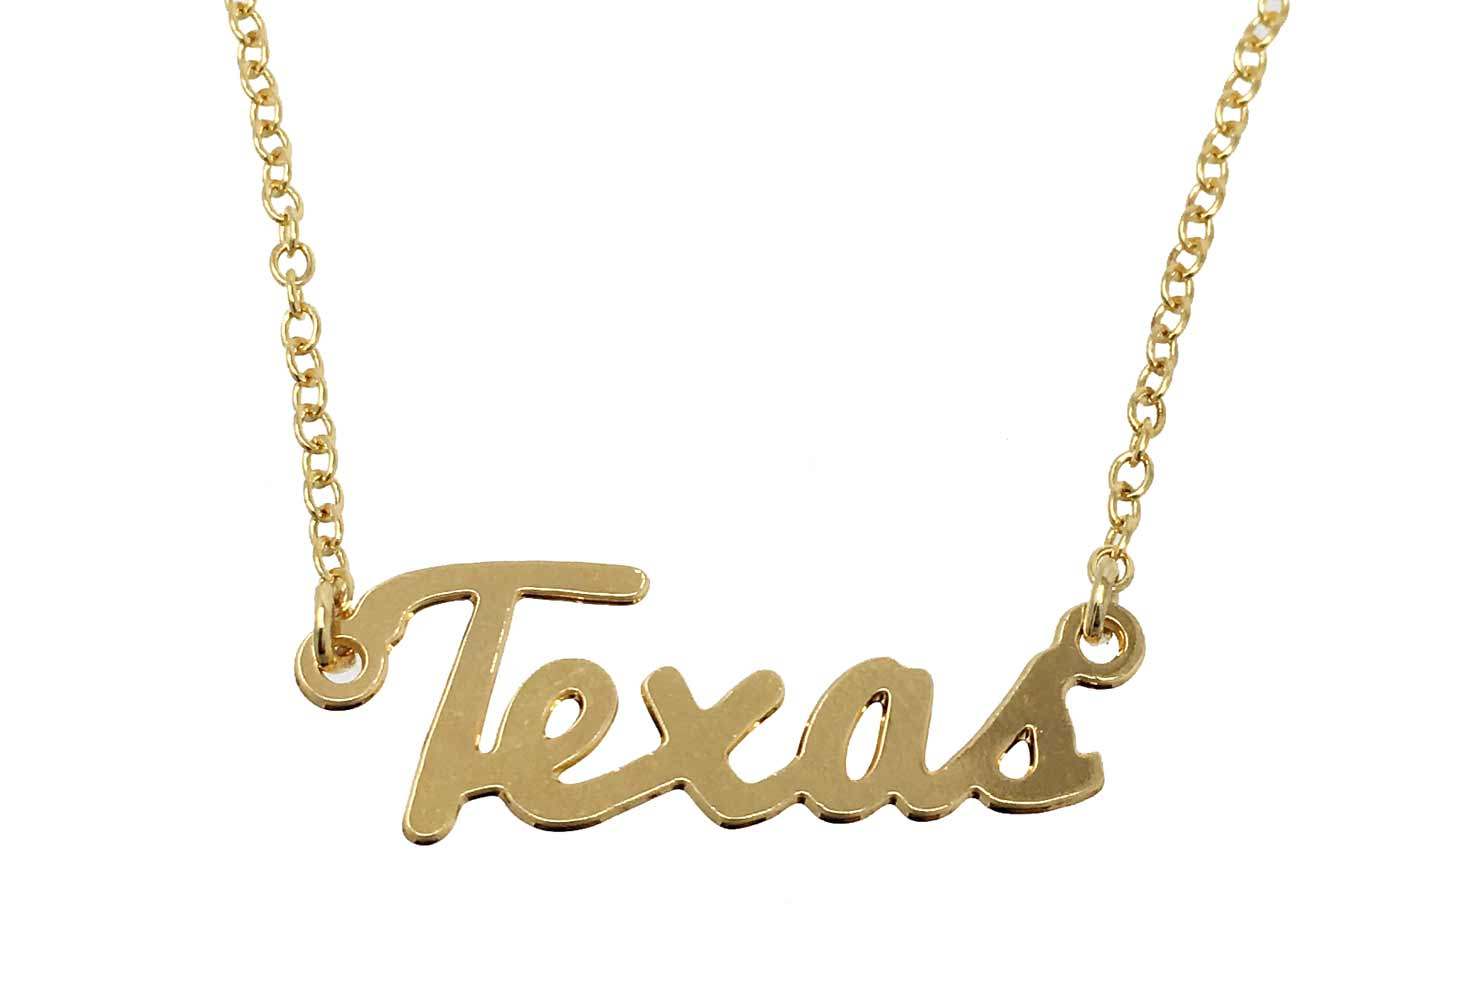 Kris nations womens state pride collection texas script necklace kris nations womens state pride collection texas script necklace gold tone aloadofball Images